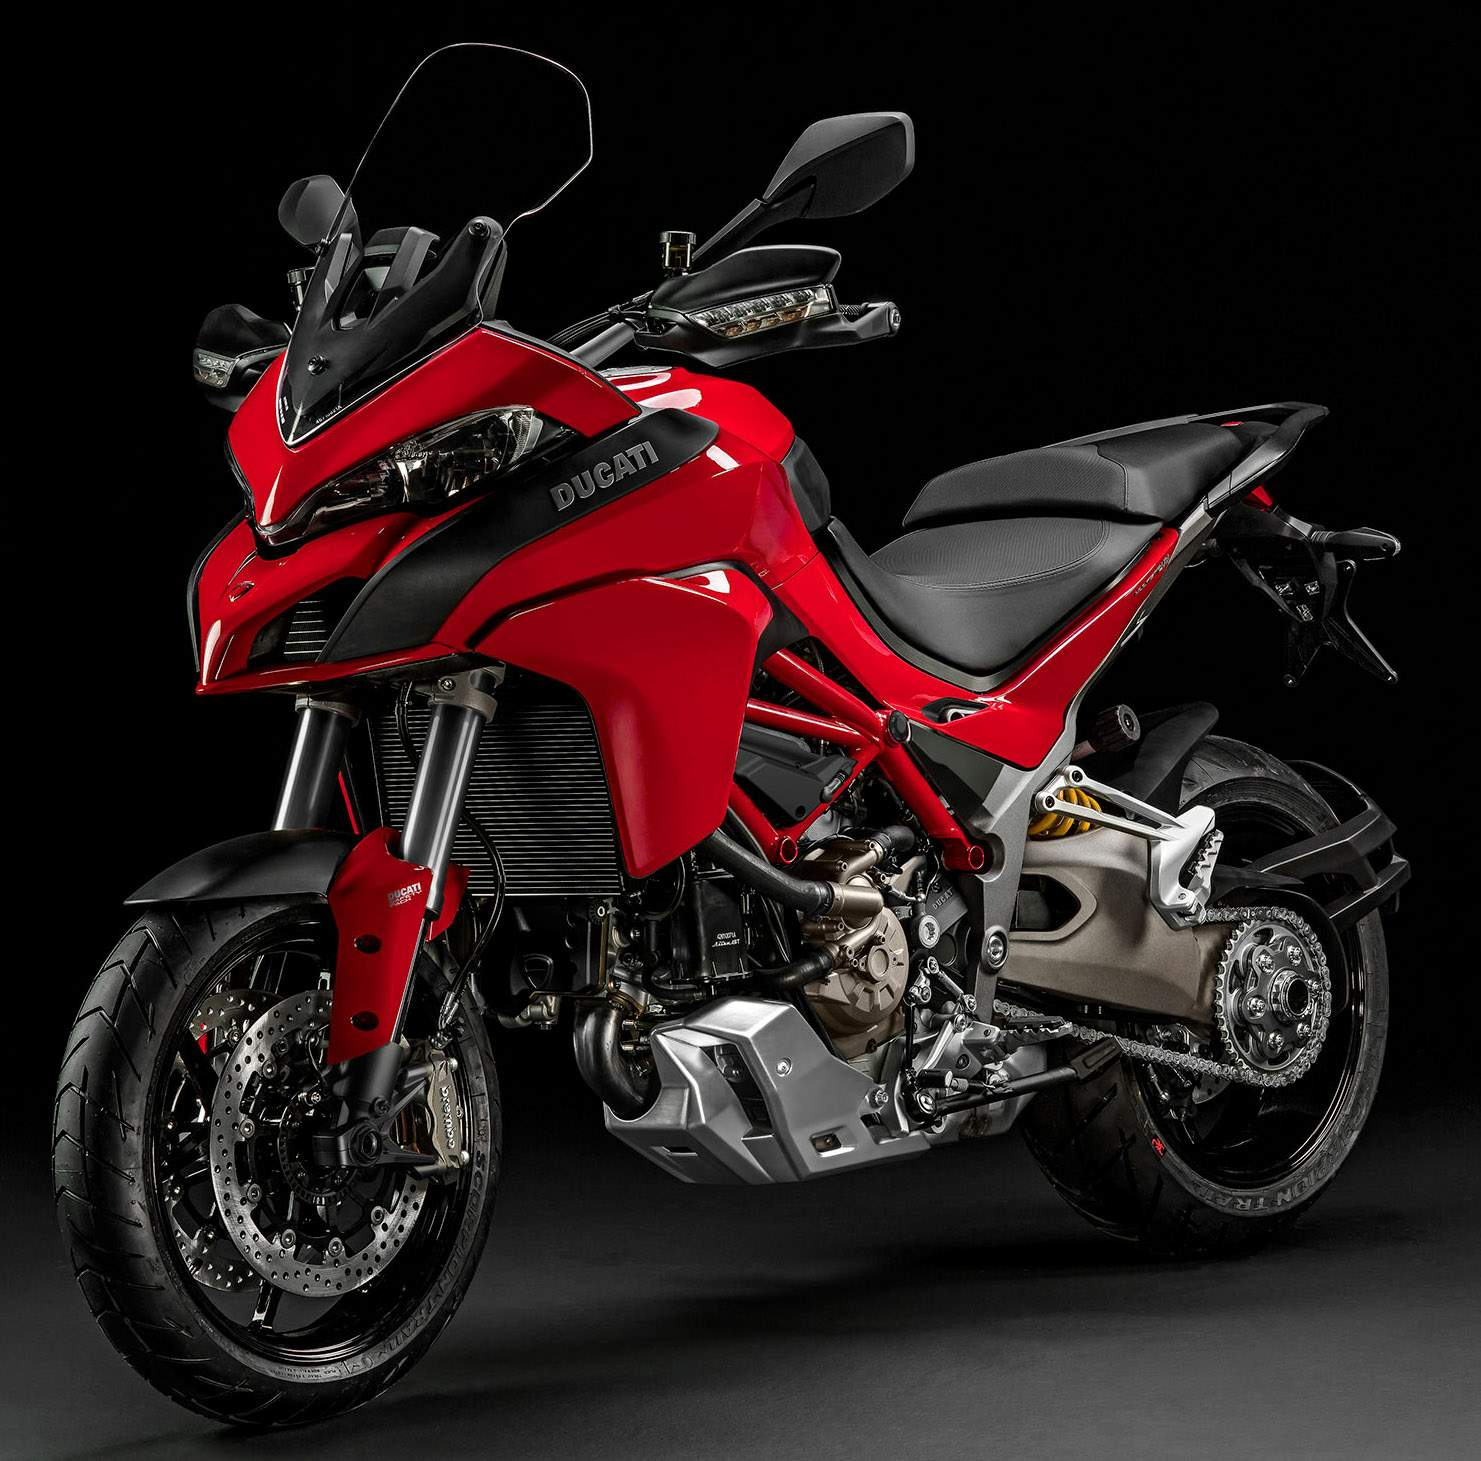 Ducati Multistrada Vs